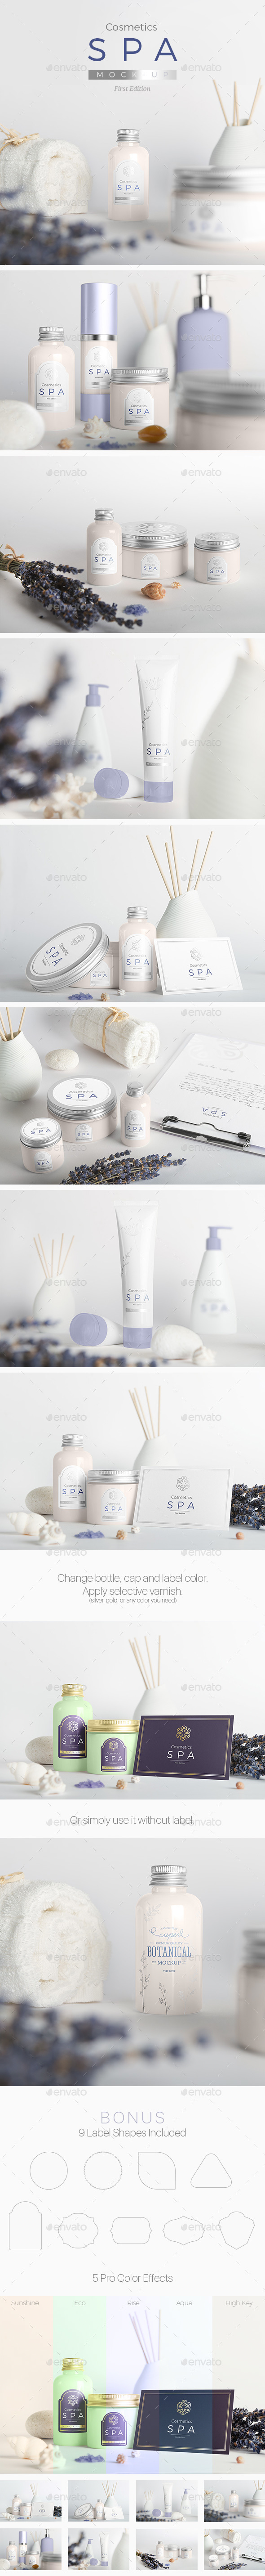 SPA Cosmetics Mock-Up V.1 - Beauty Packaging